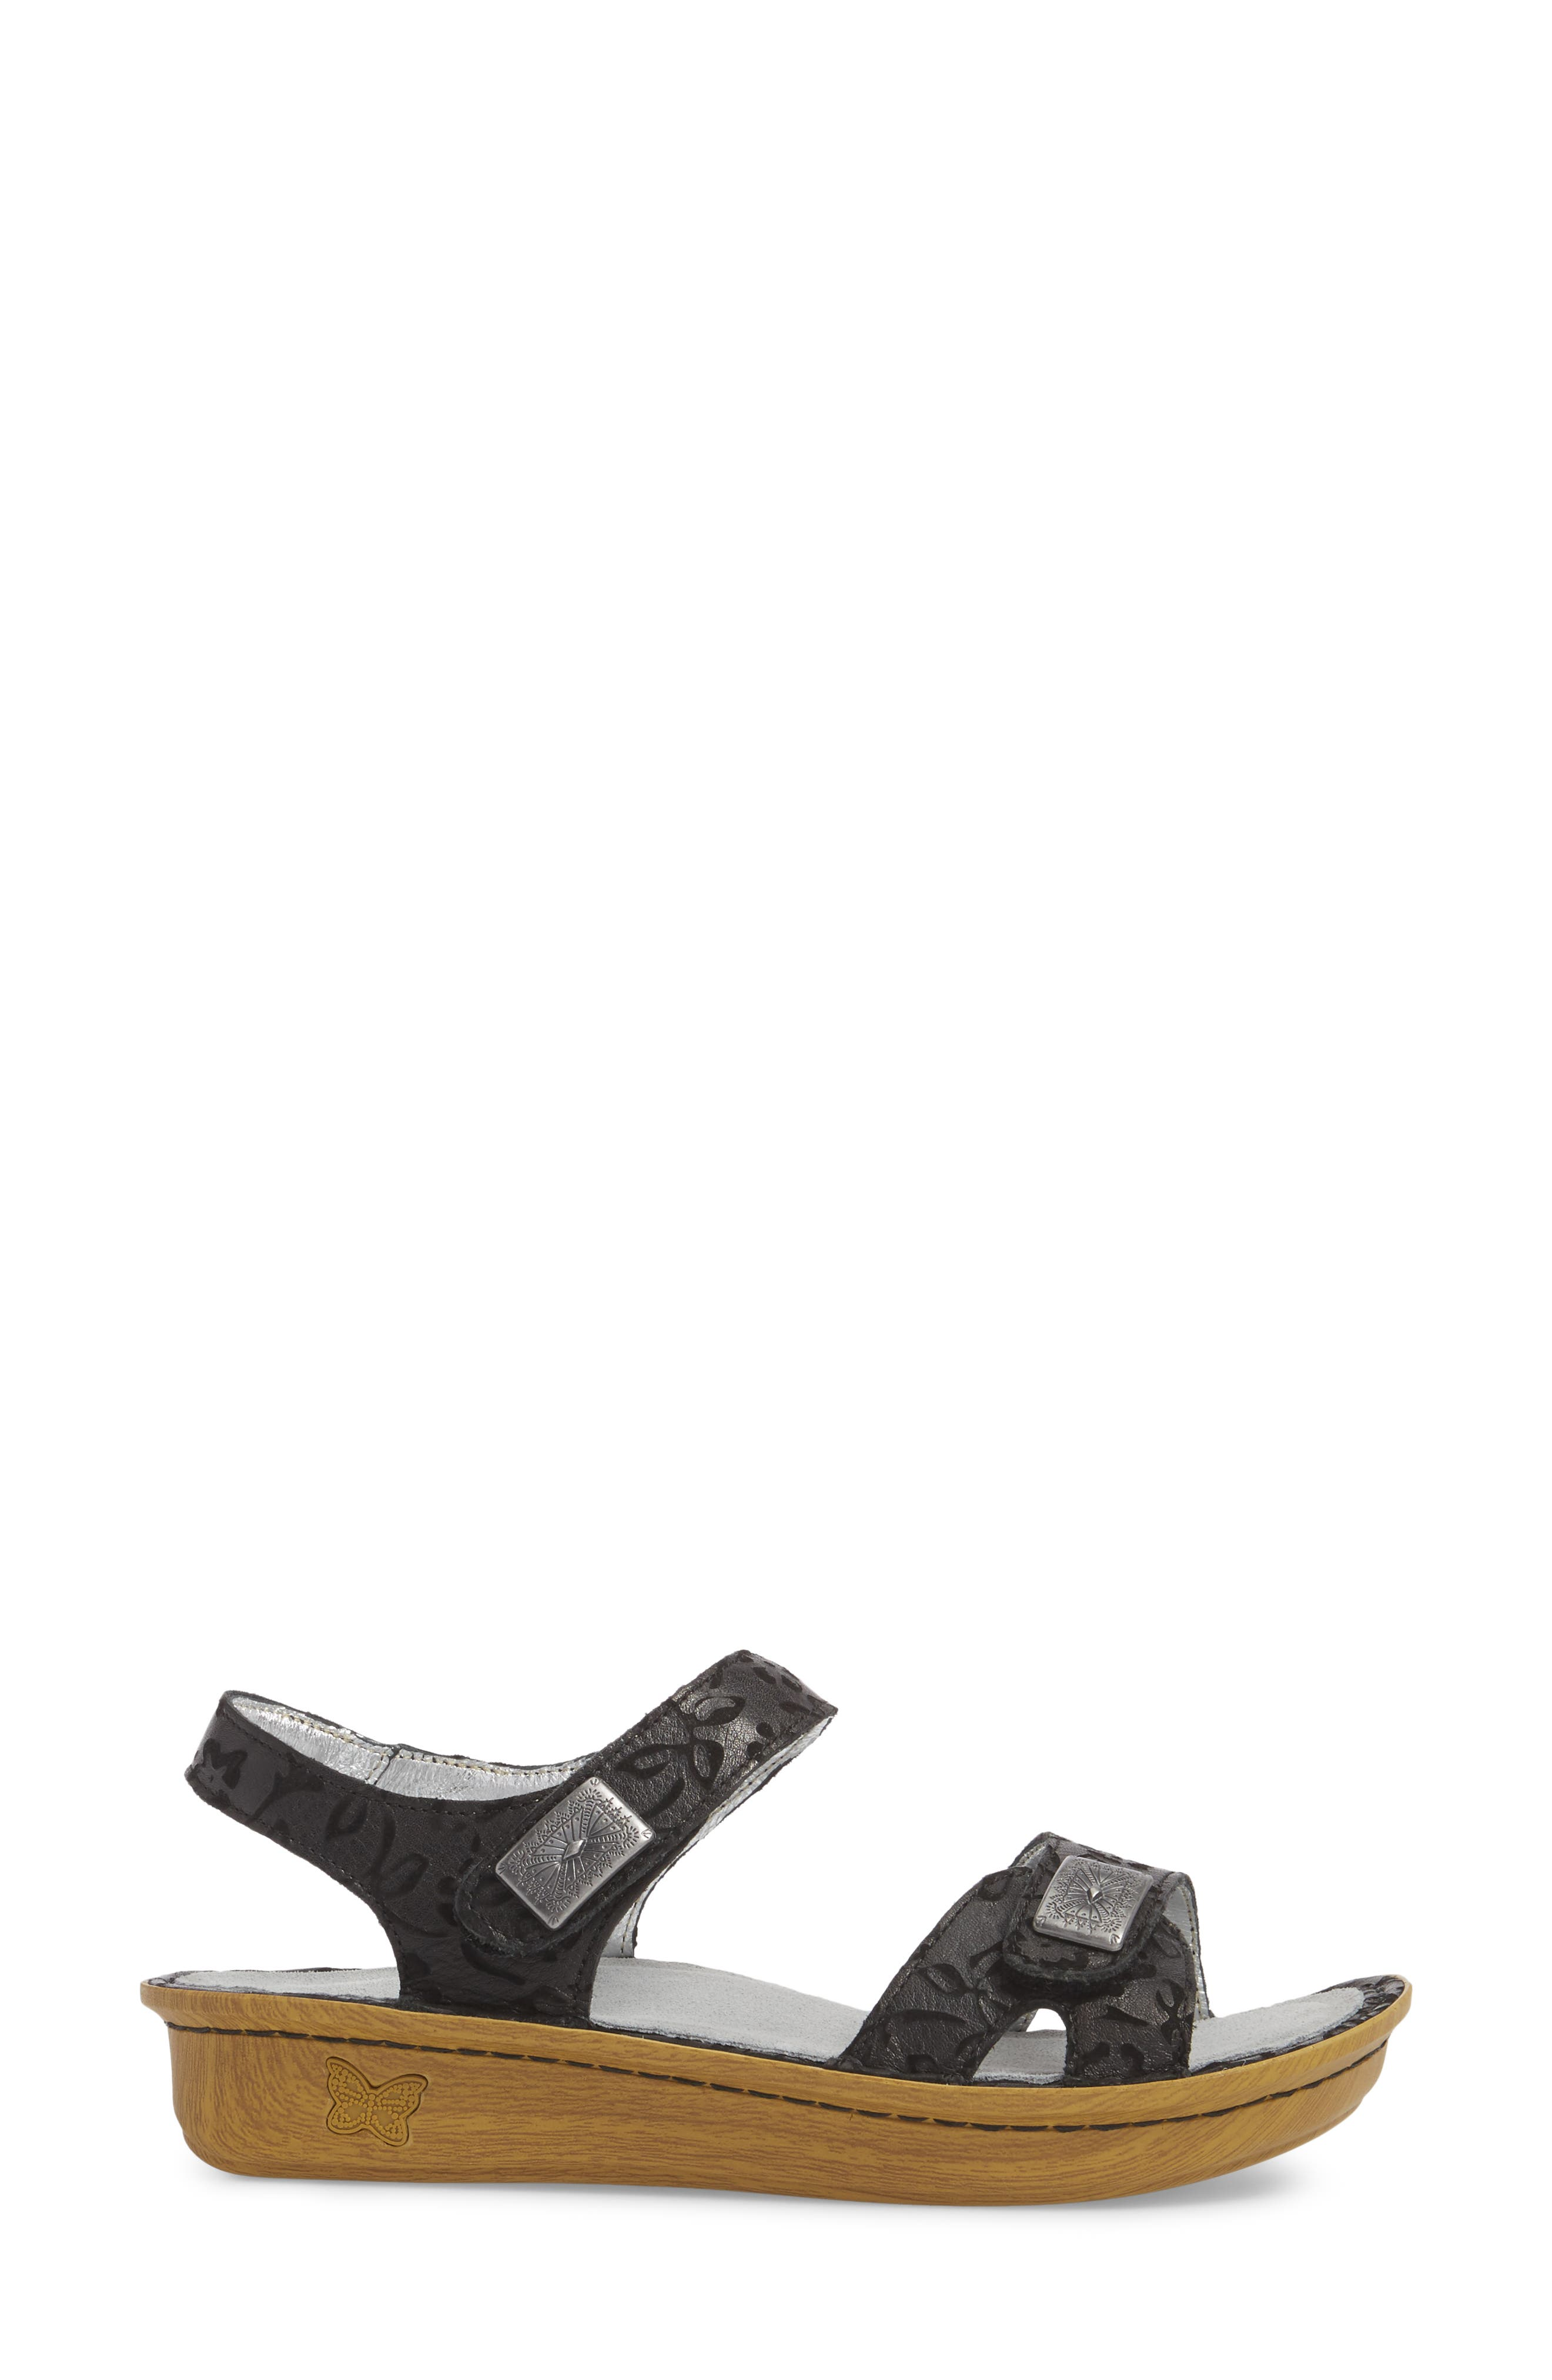 Vienna Sandal,                             Alternate thumbnail 3, color,                             MORNING GLORY BLACK LEATHER